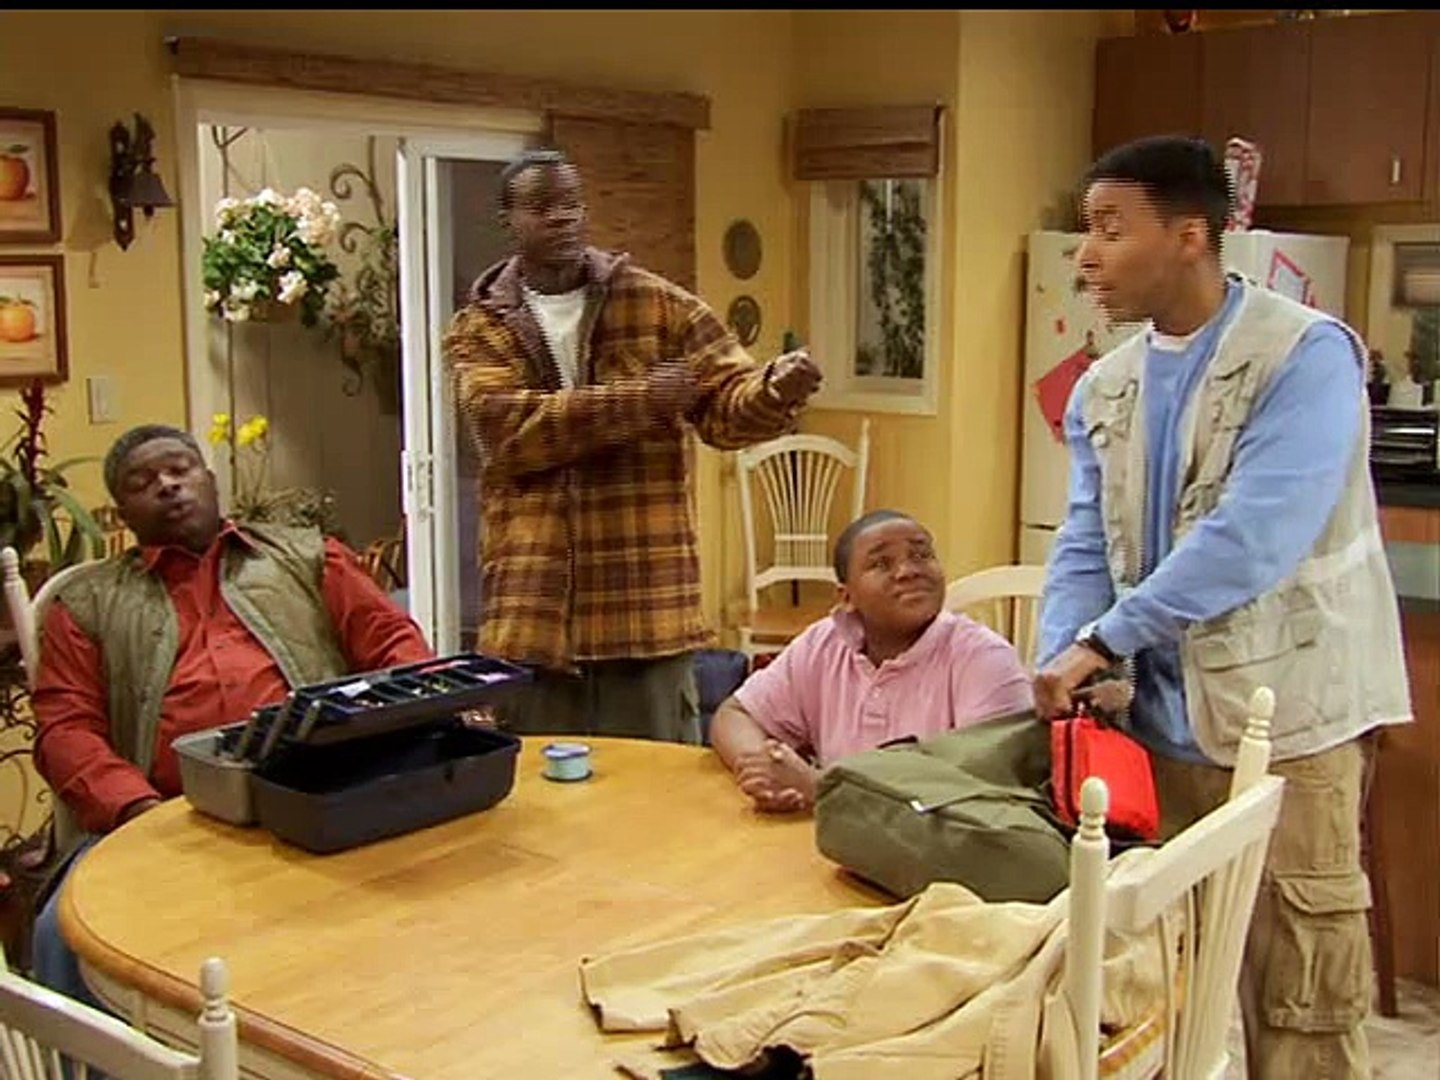 Tyler Perrys House of Payne - S4 - E19 - Guys Night Out Girls Night In